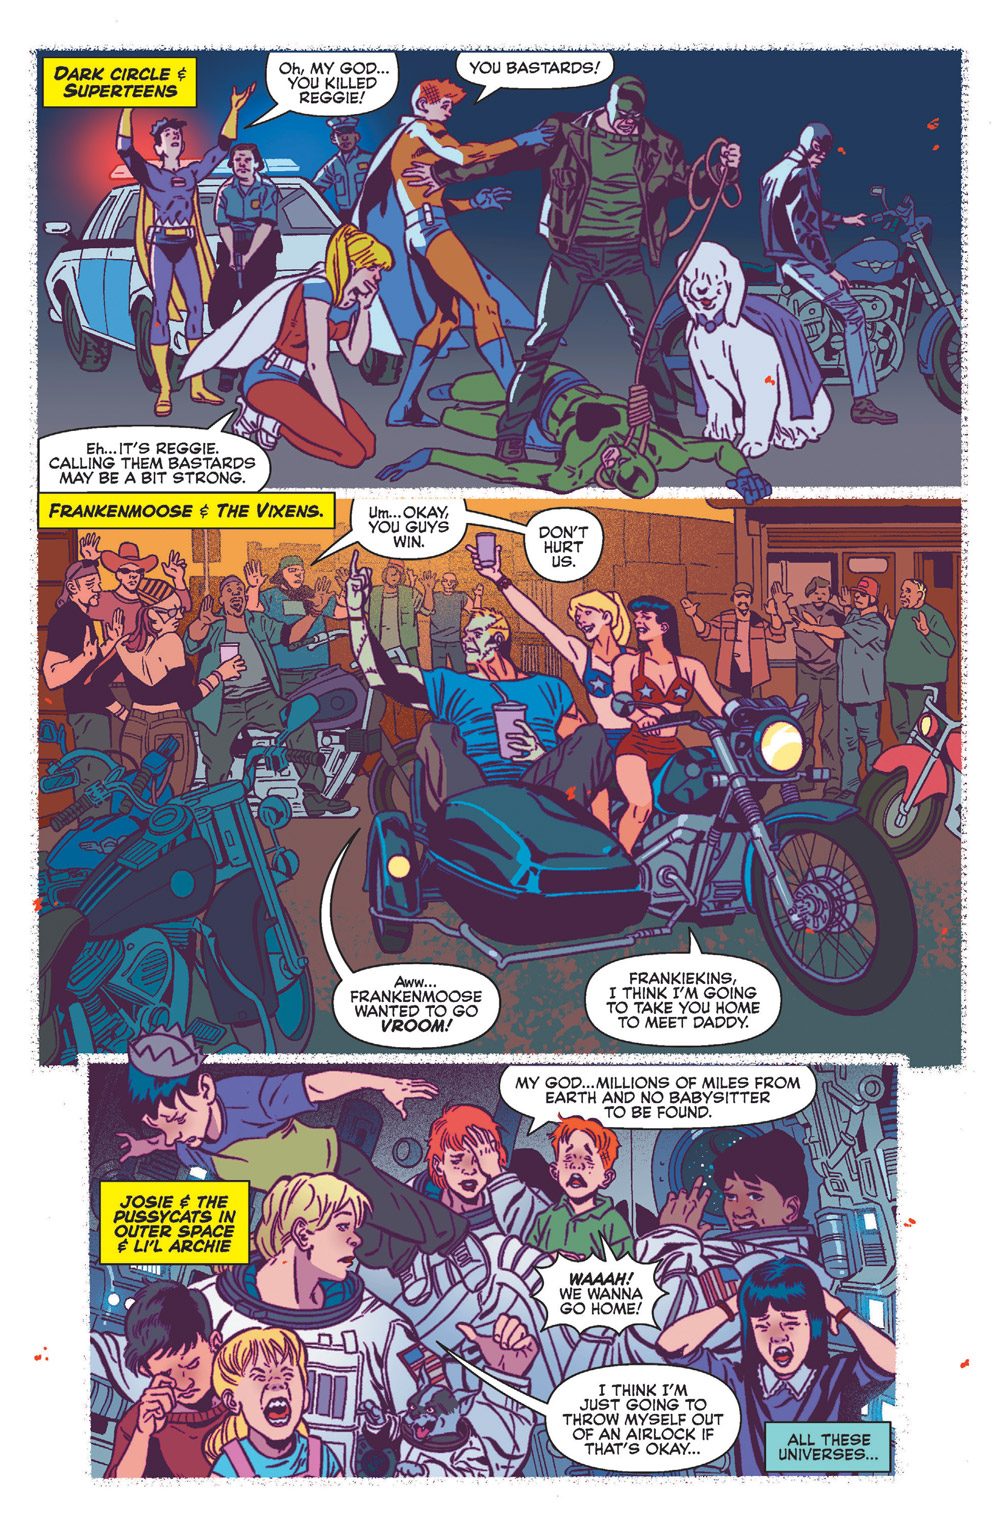 Glimpses of the Multiverse in Jughead the Hunger Vs Vampironica #5.